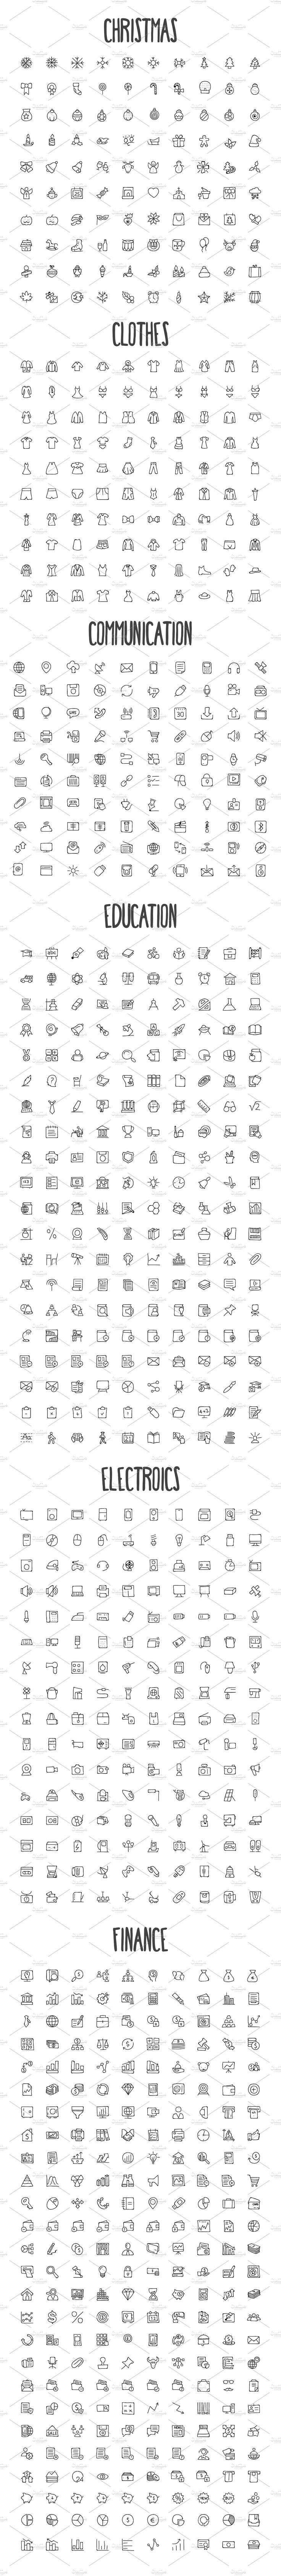 2440 Hand Drawn Doodle Icons Bundle by creativestall on @creativemarket